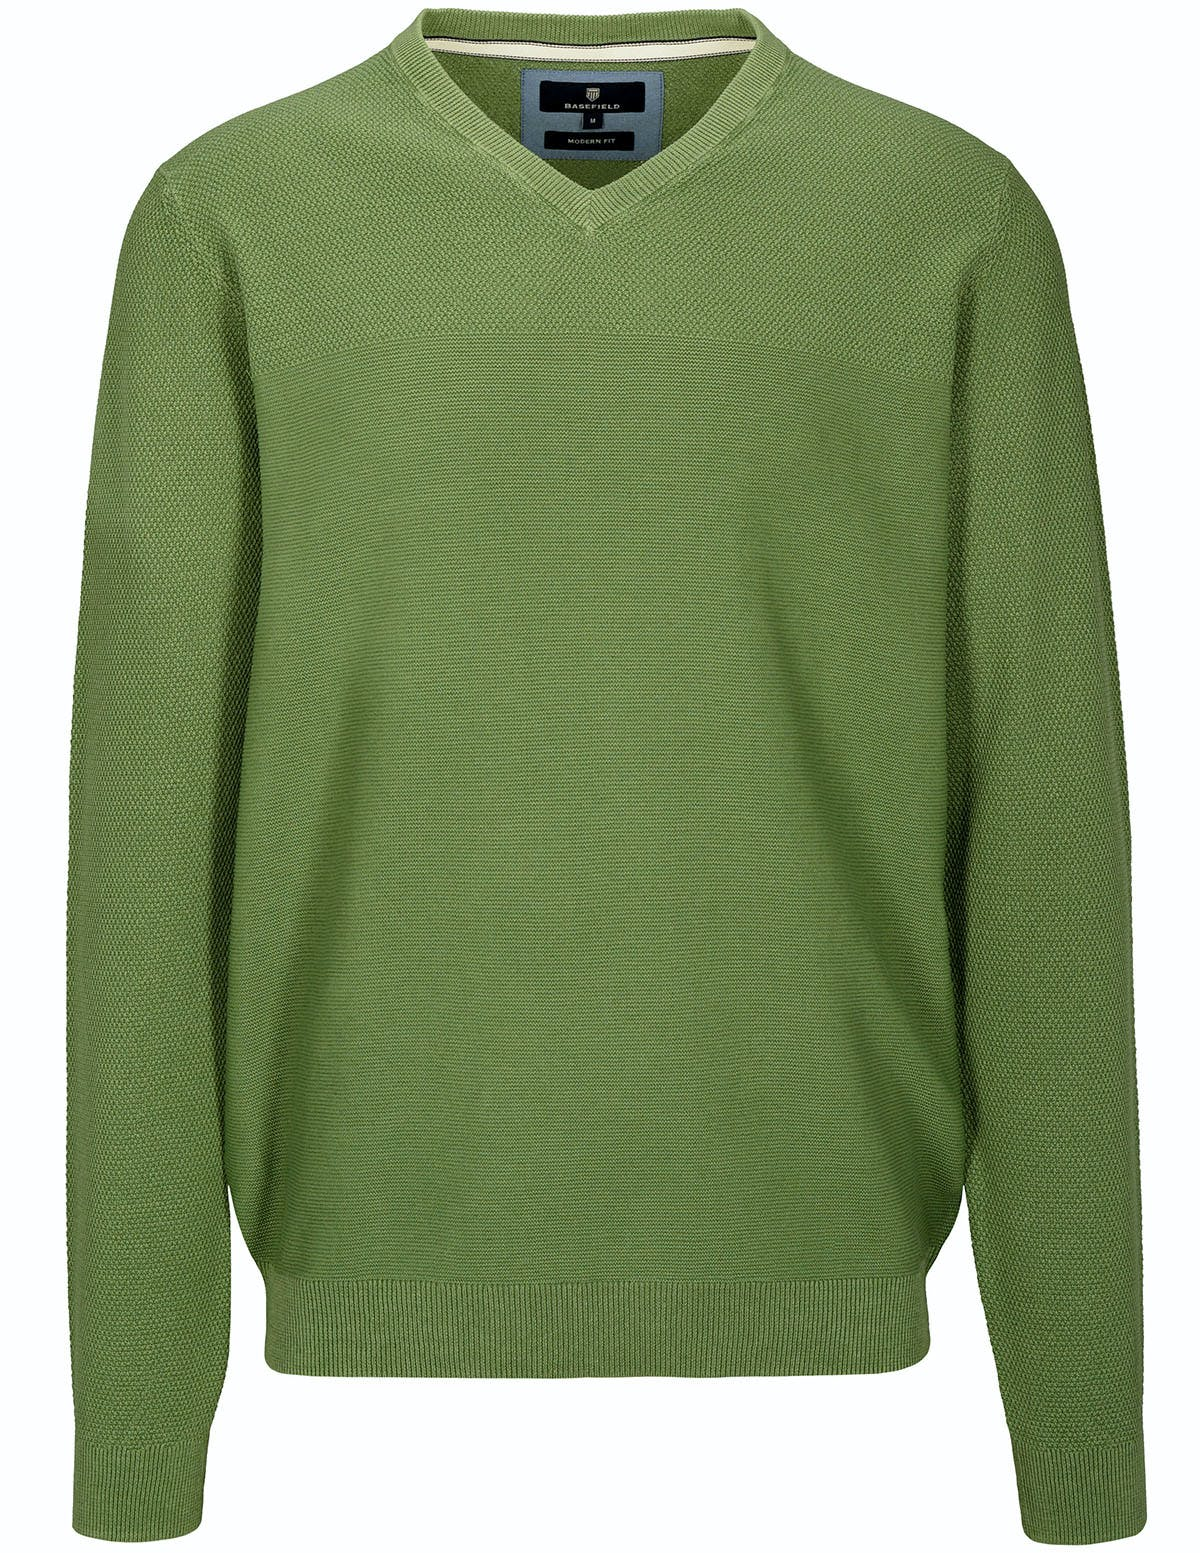 219012781-grass__pullover__all